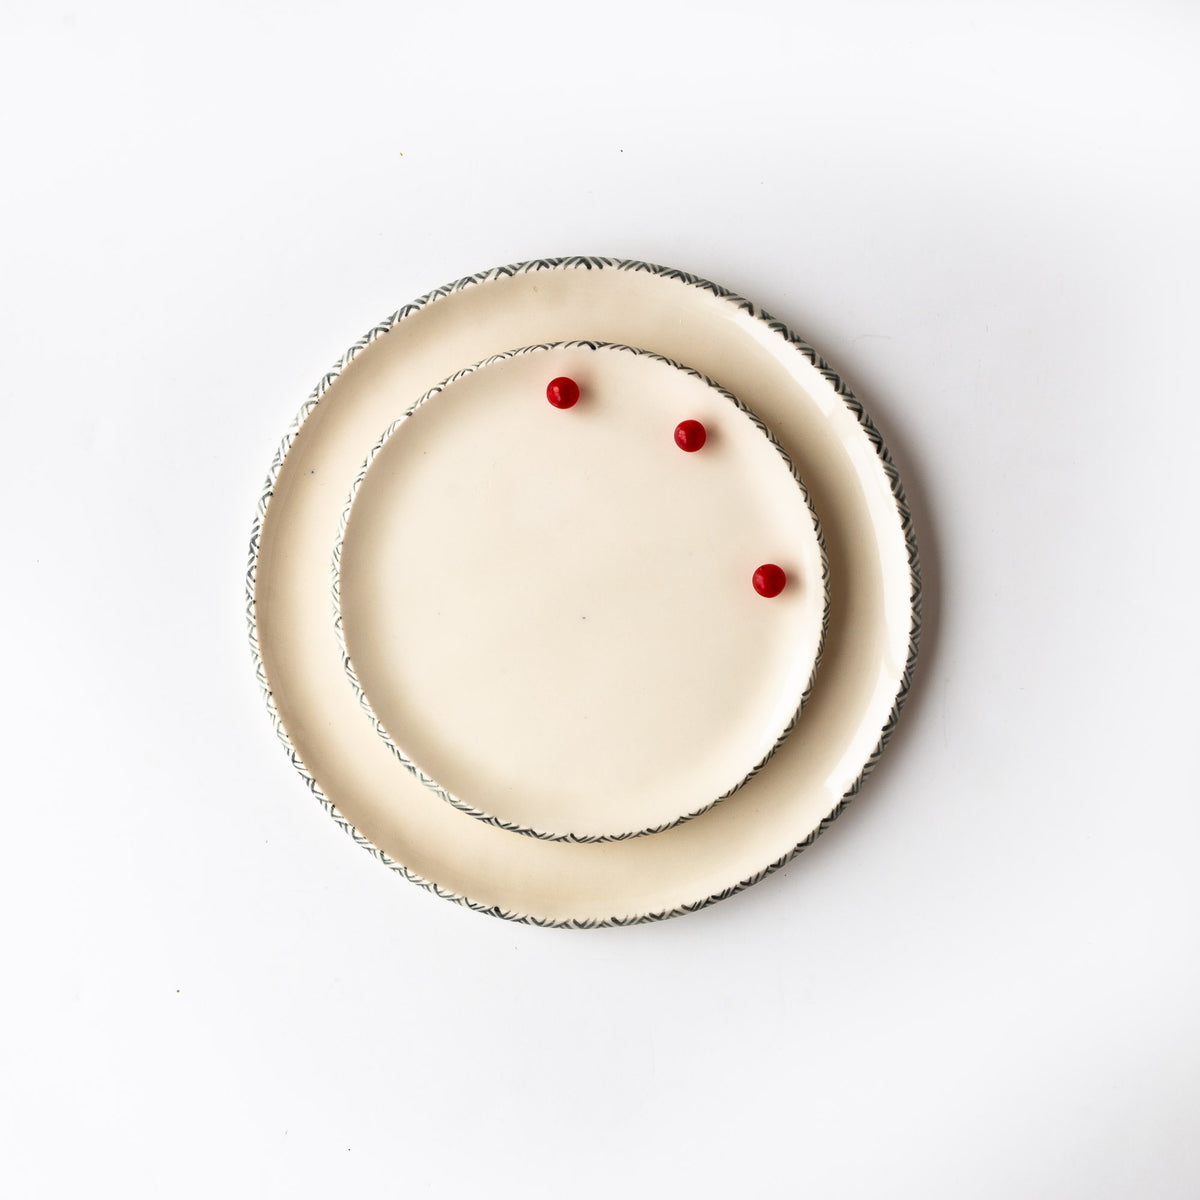 Top View - Small & Medium Handmade Porcelain Plates With Rim Adorned With a Painted Frieze - Sold by Chic & Basta